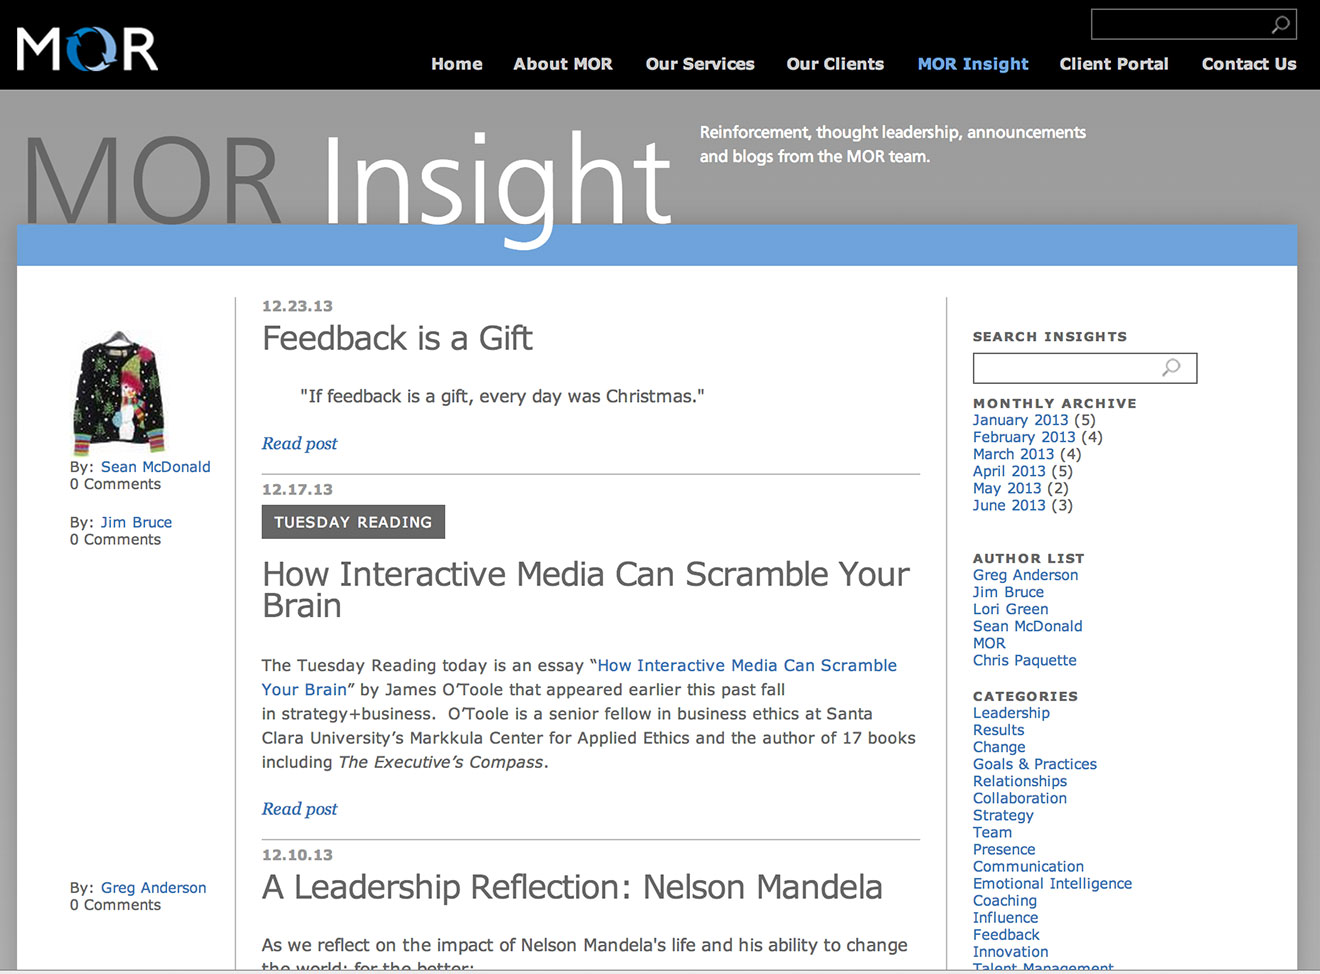 MOR insight section